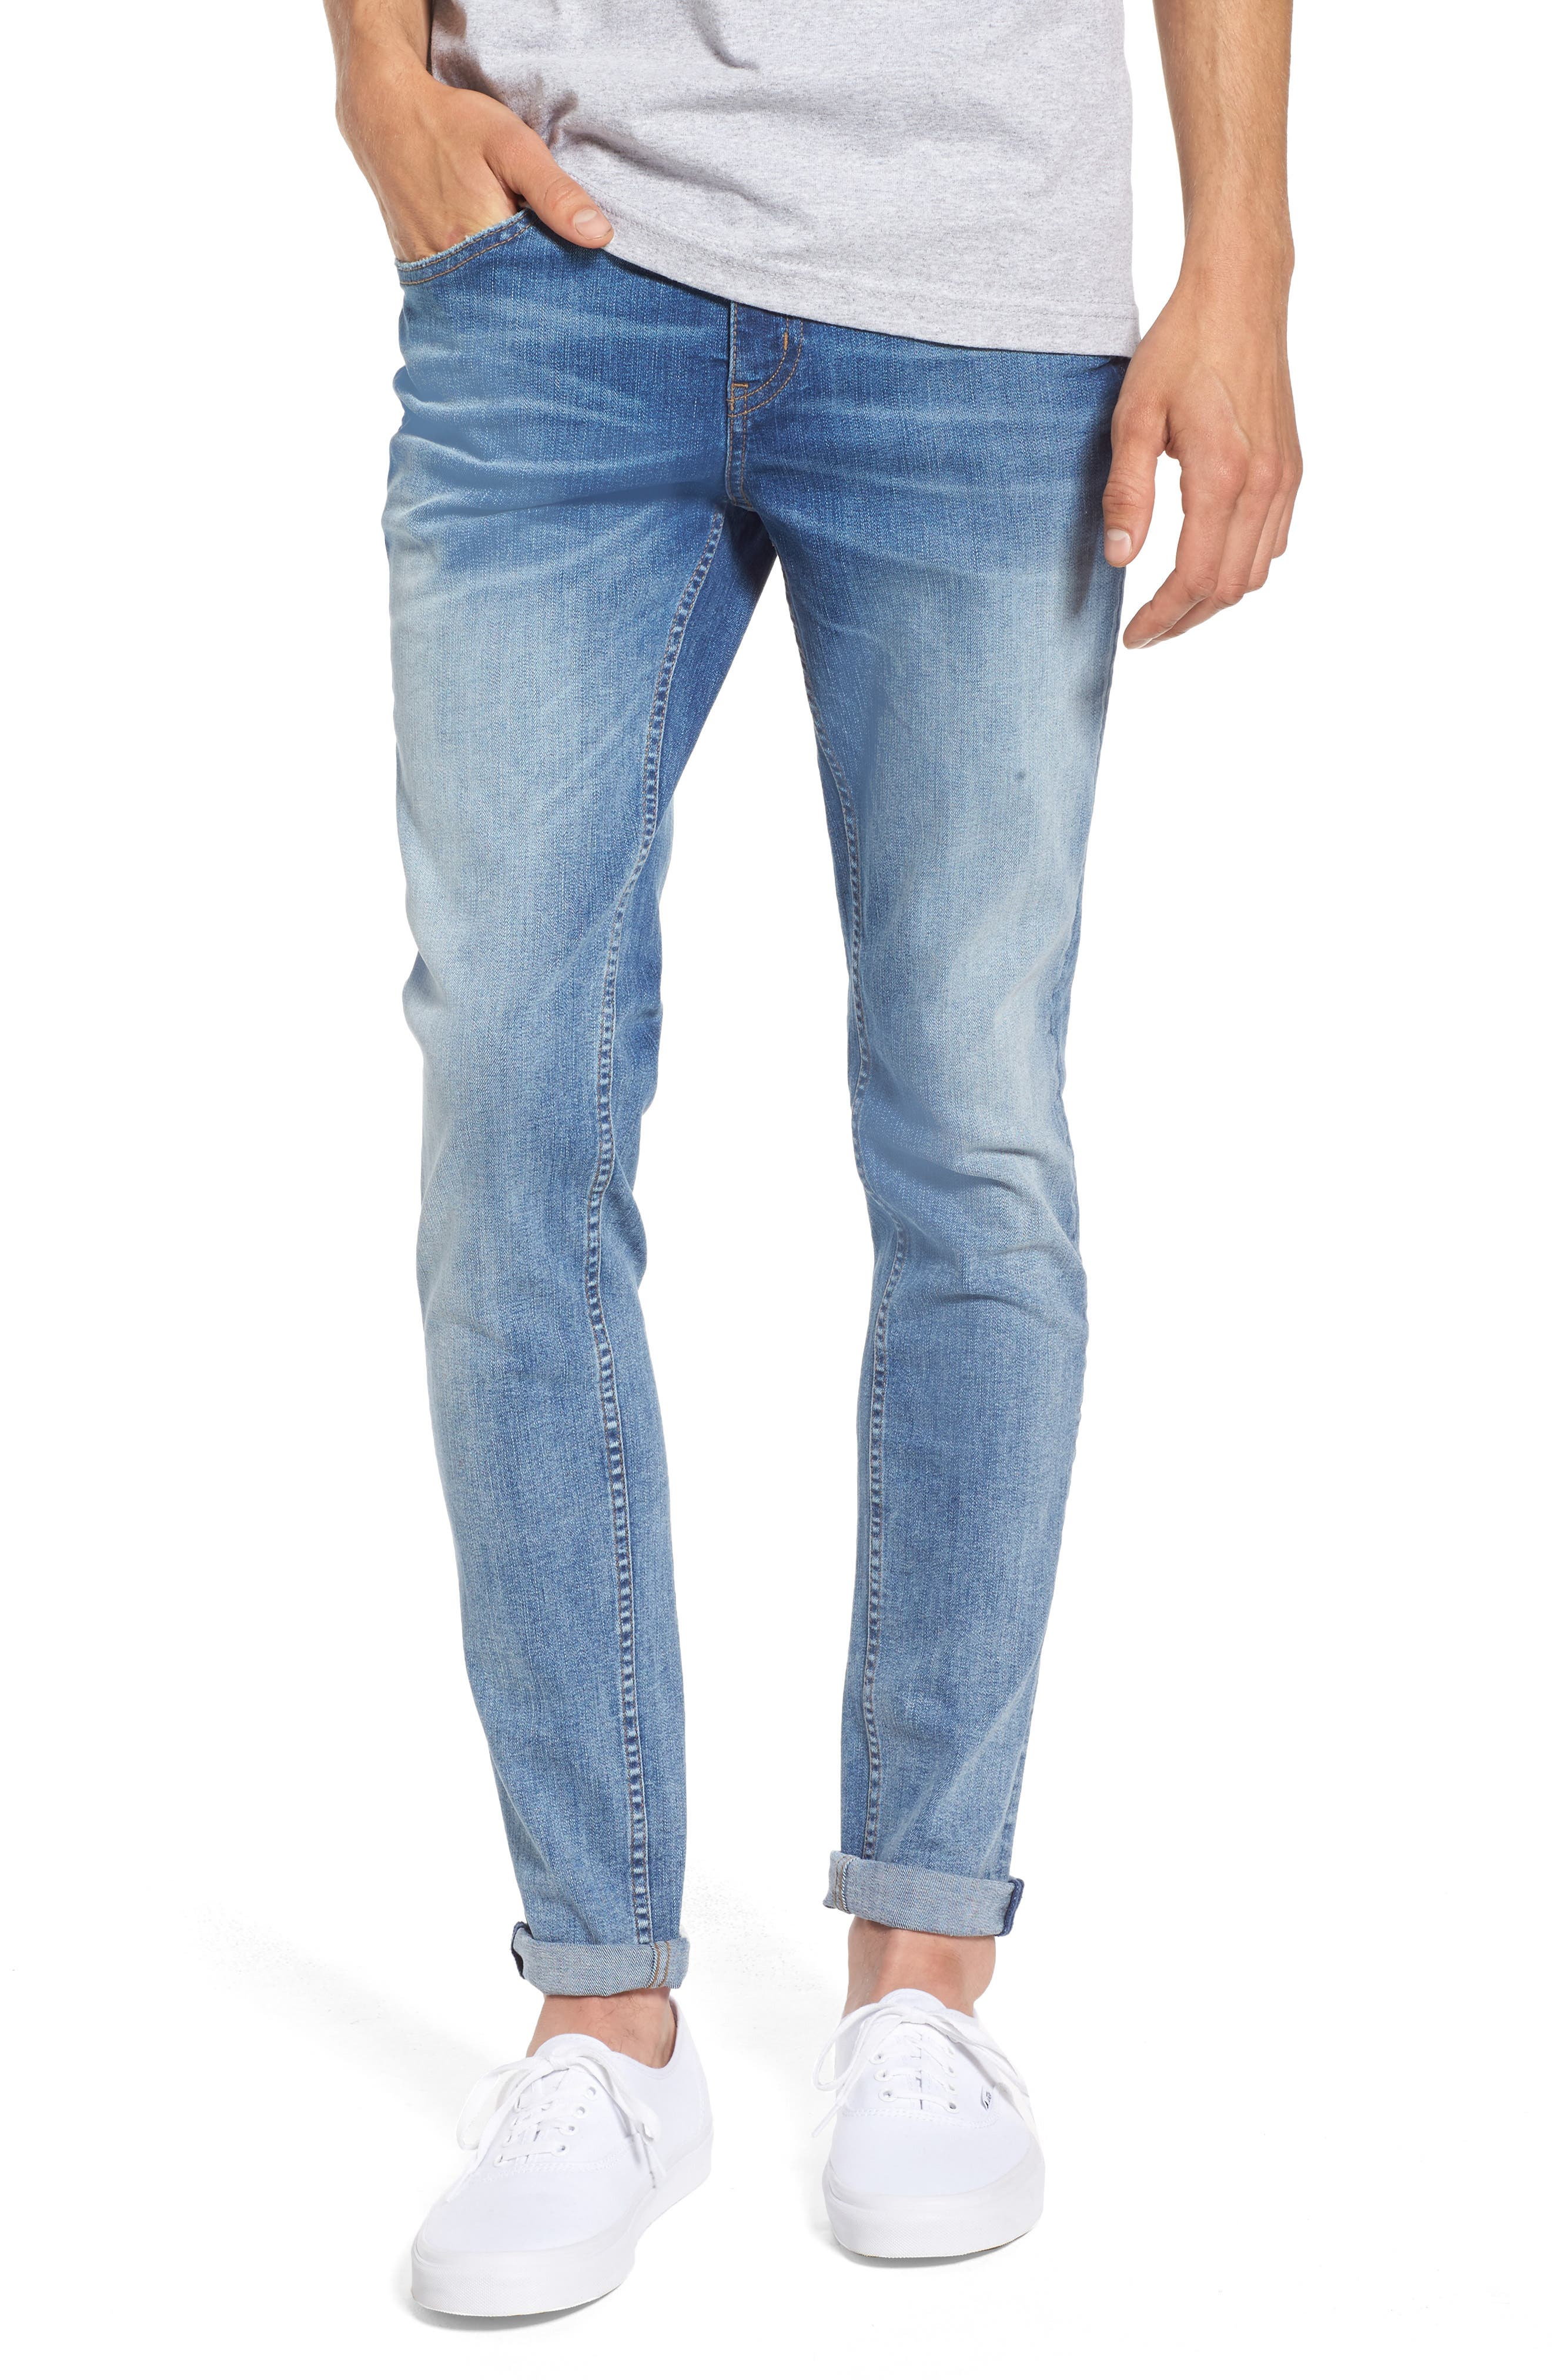 Alternate Image 1 Selected - Cheap Monday Tight Skinny Fit Jeans (Dug Up Blue)